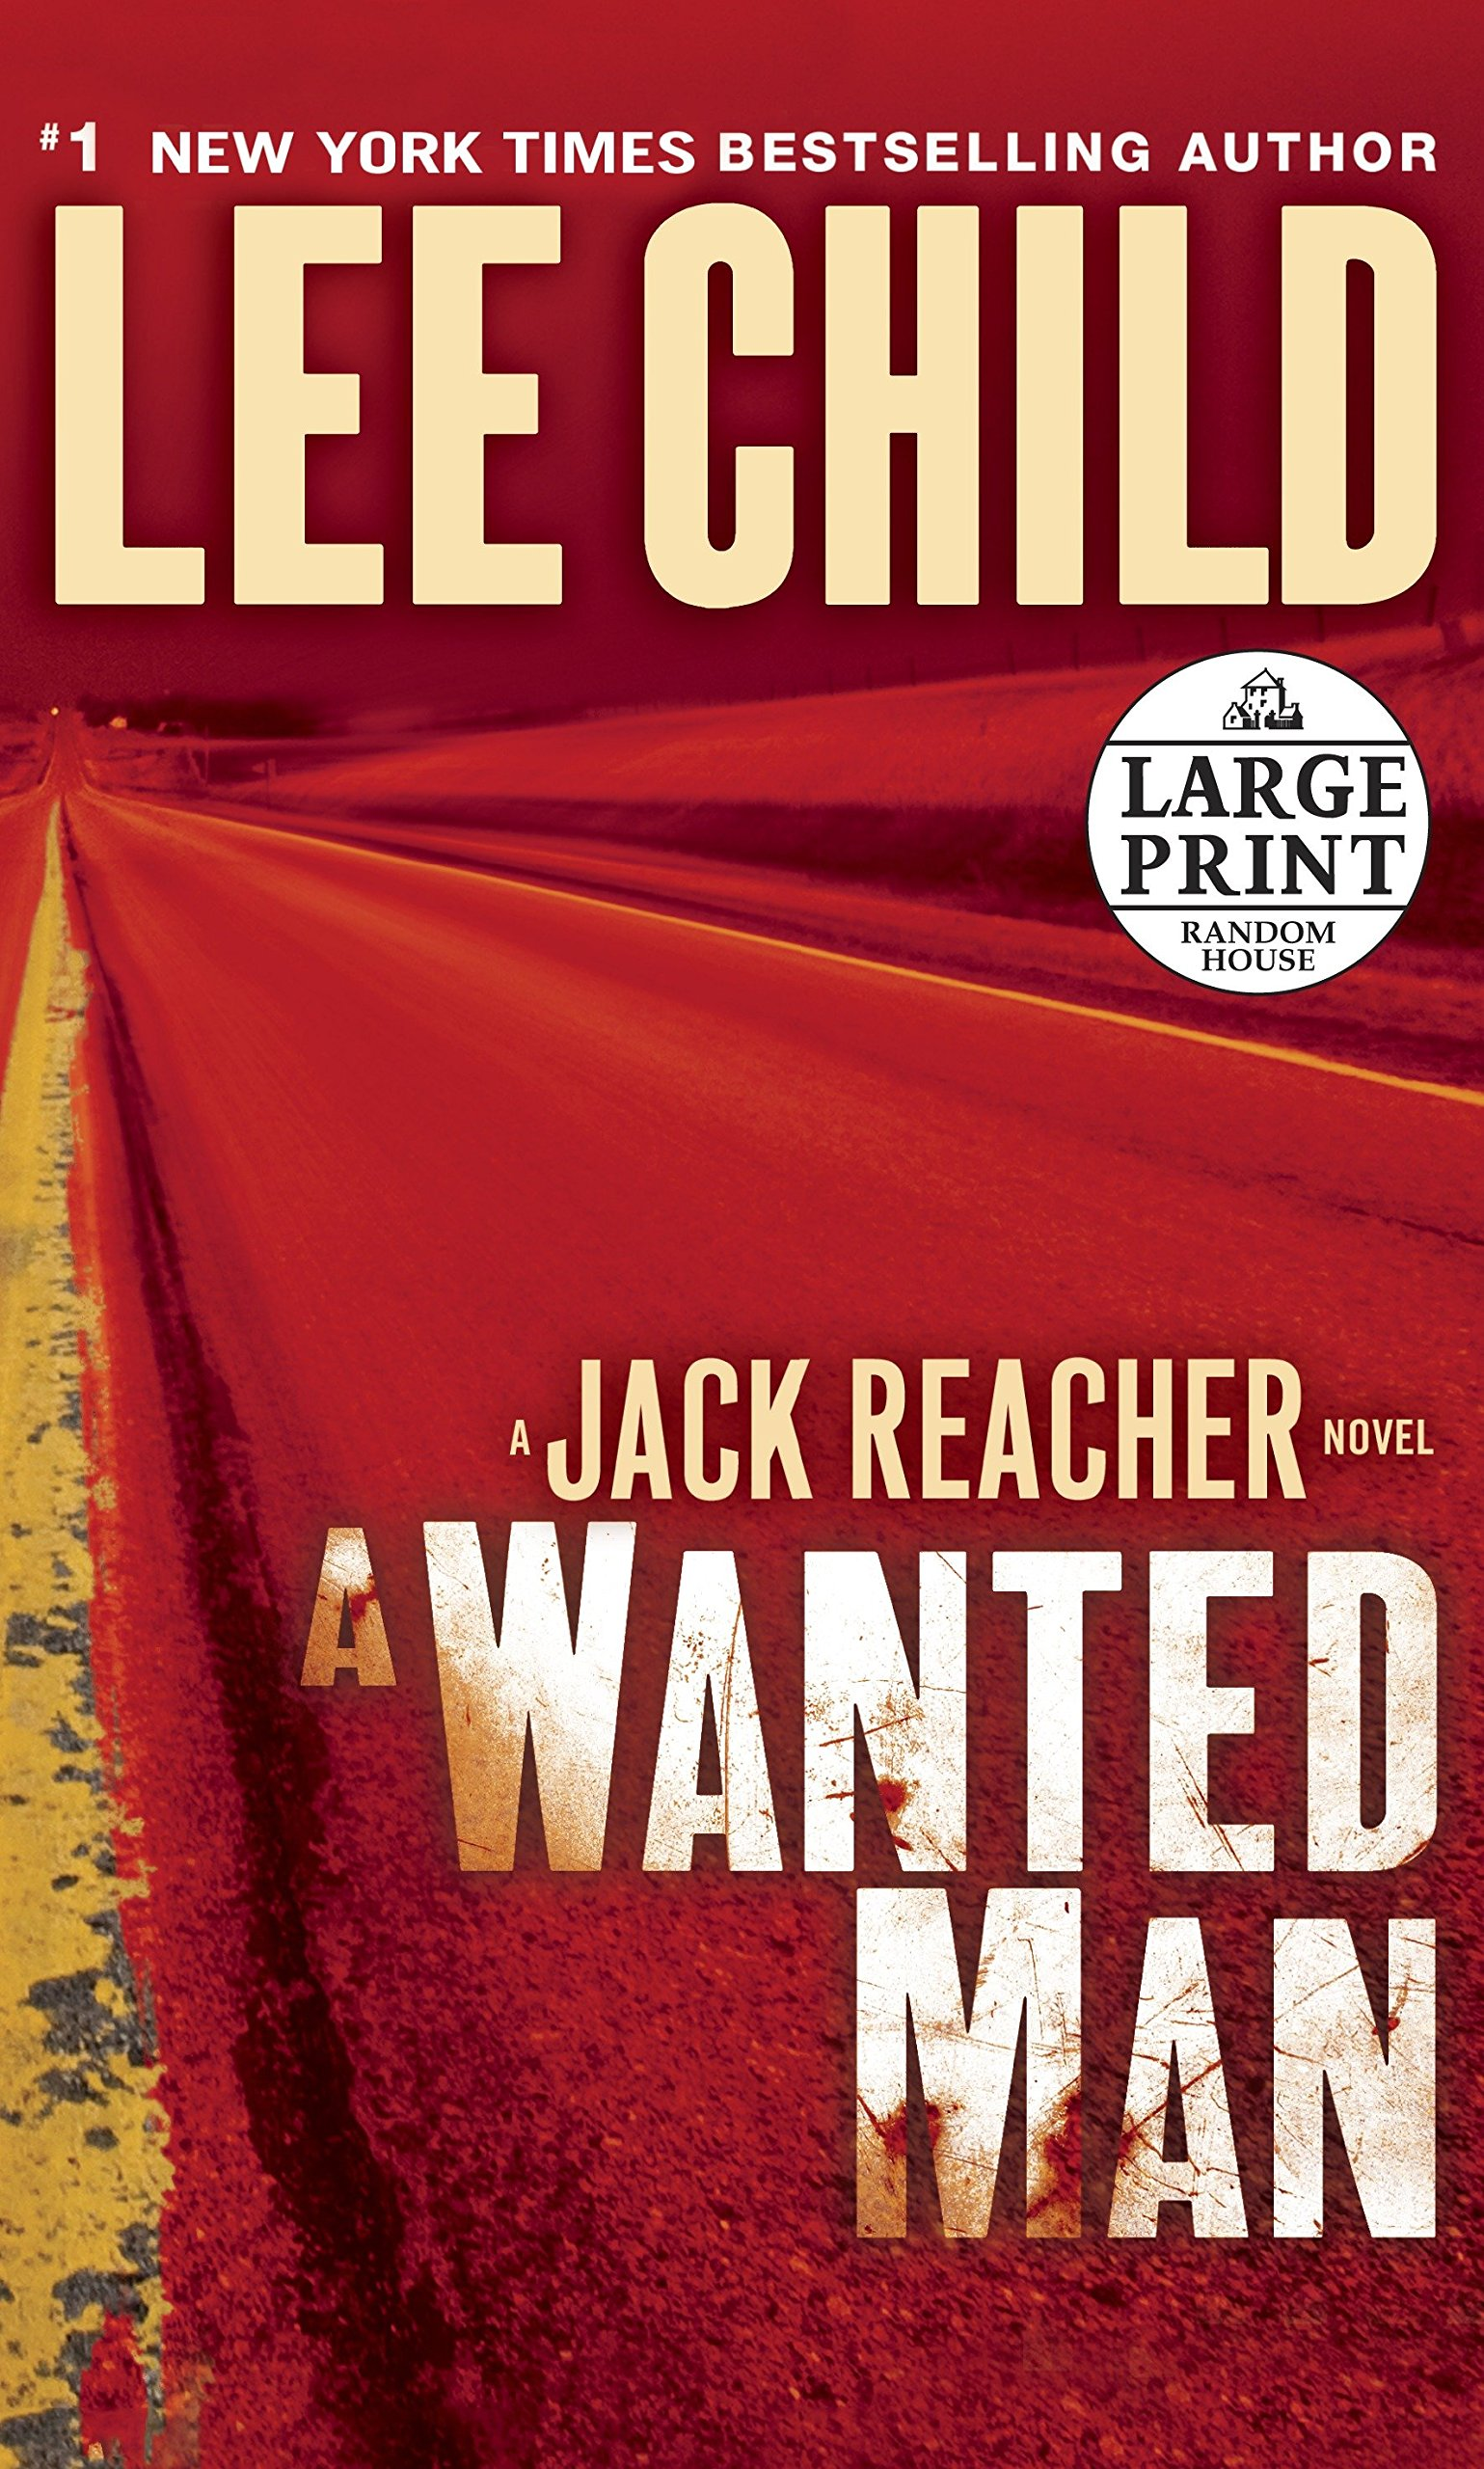 how many jack reacher books are there